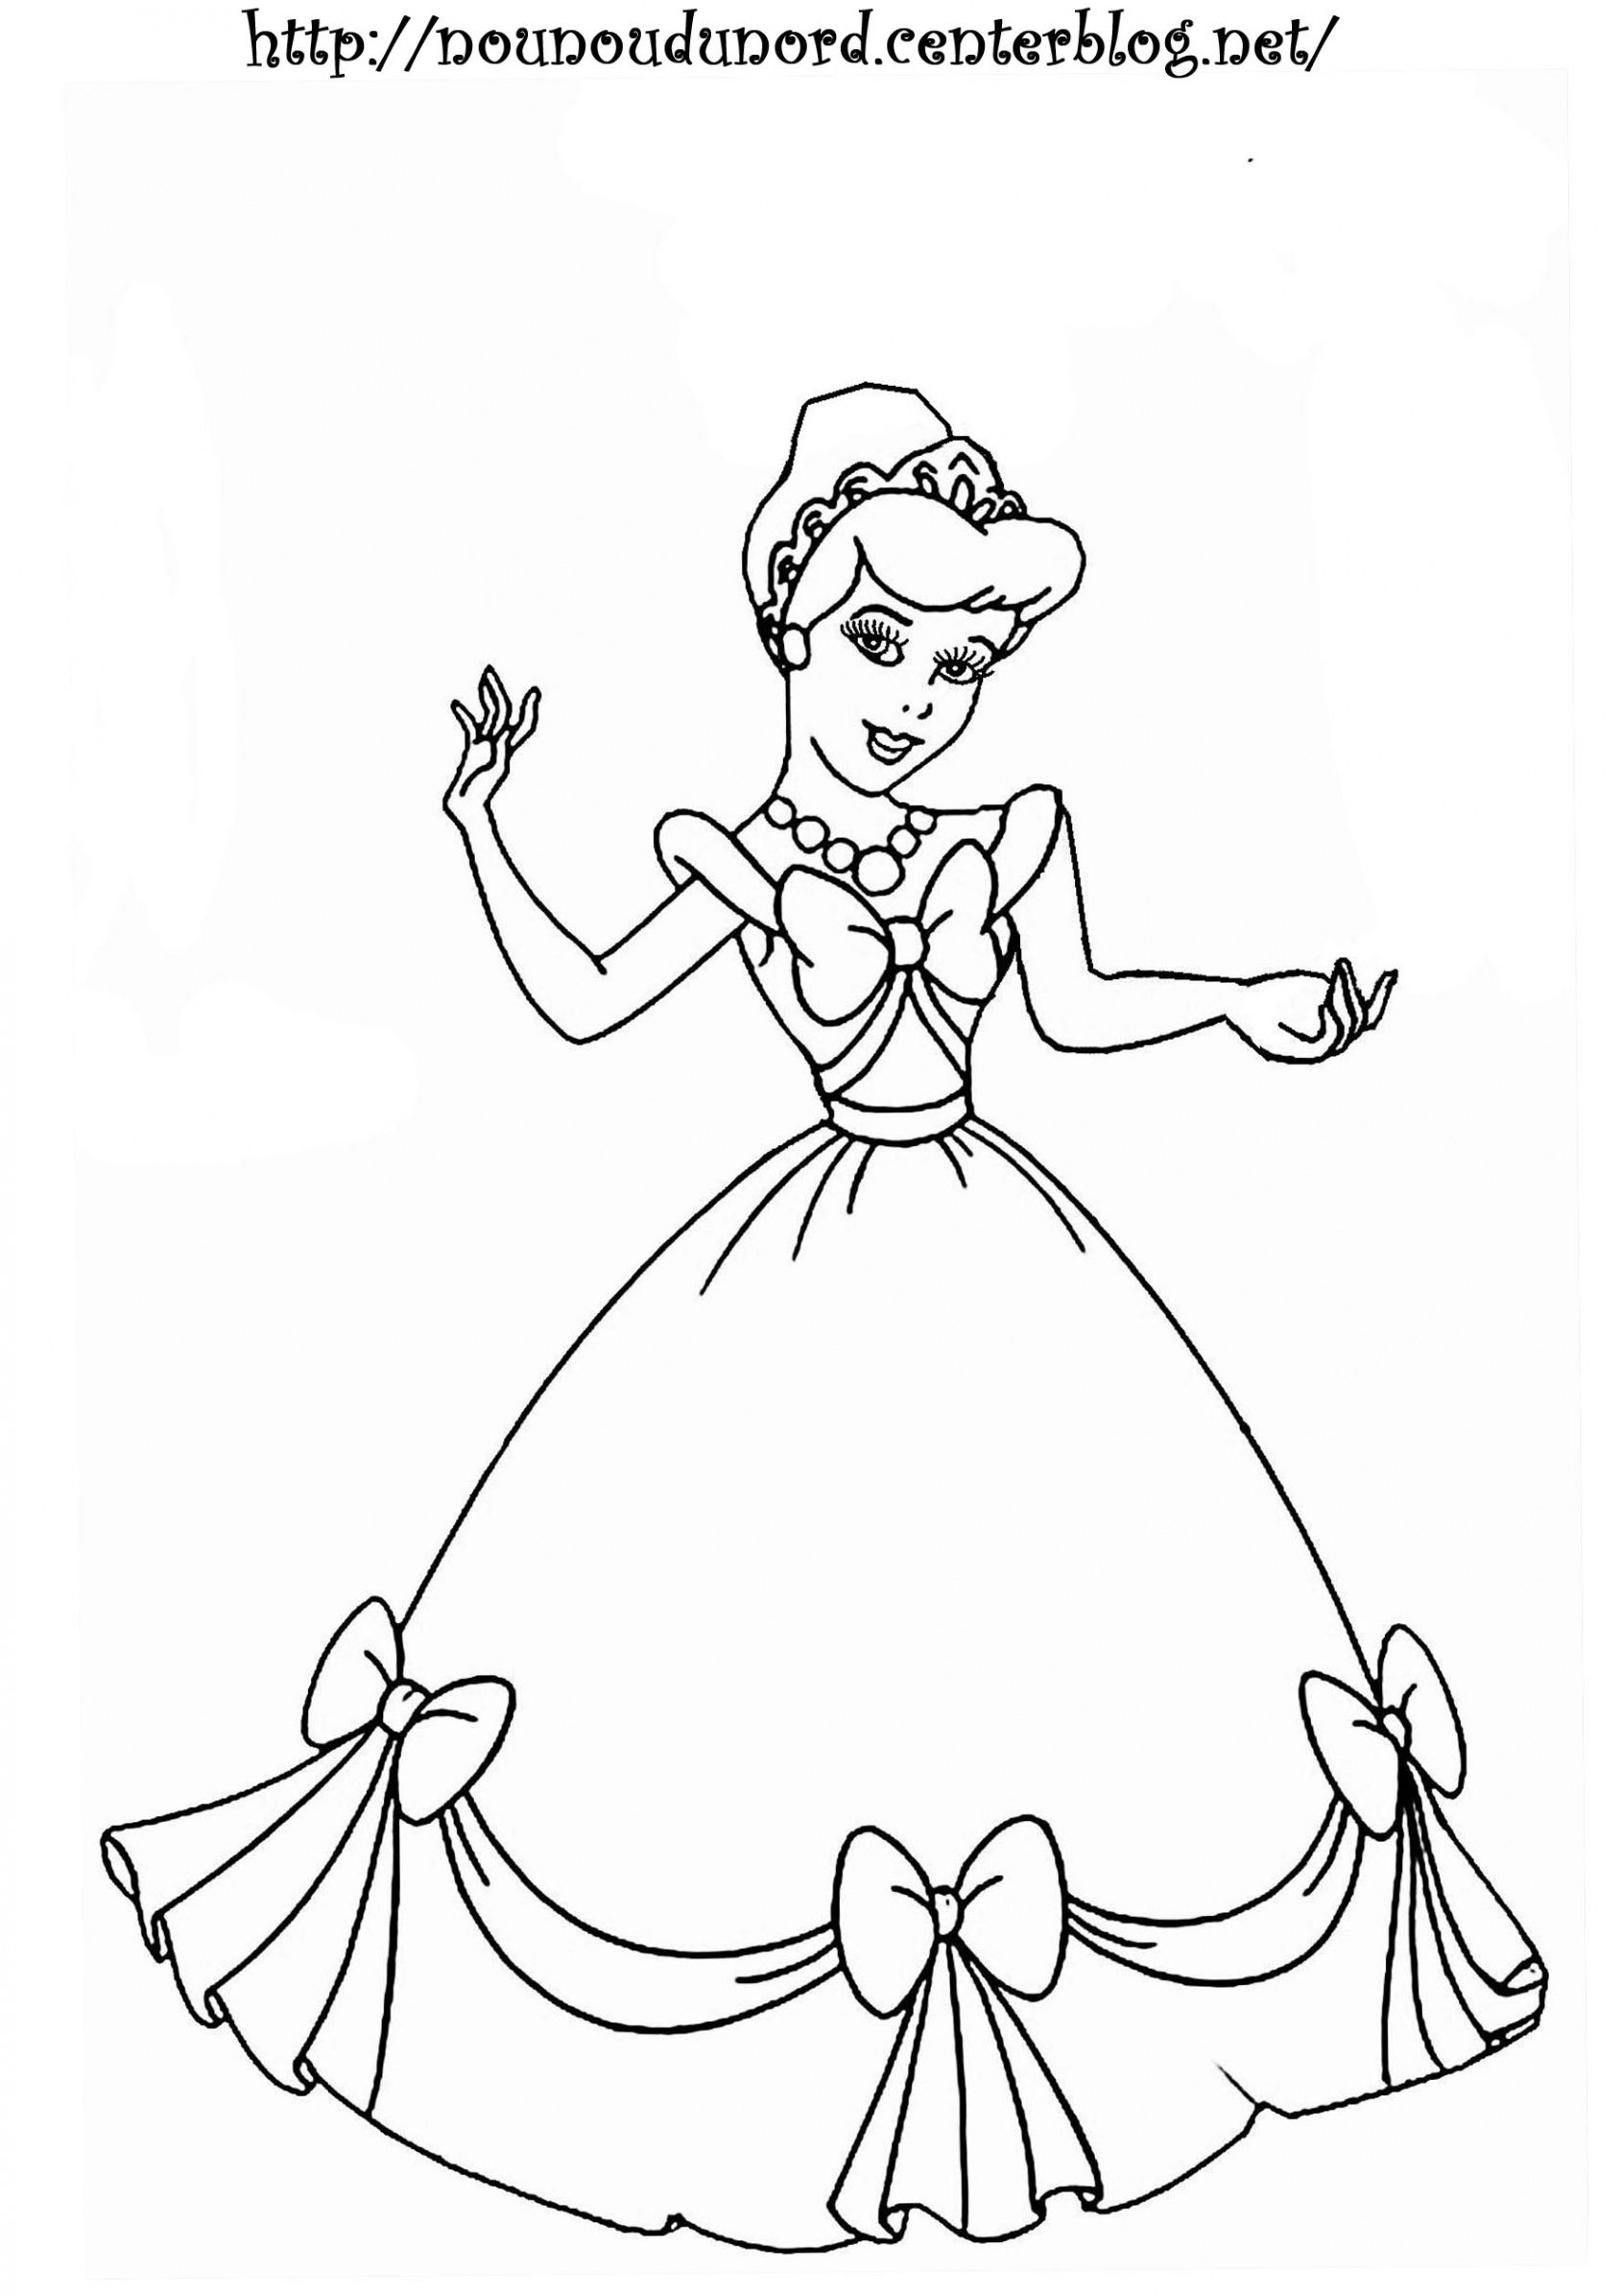 136 Dessins De Coloriage Princesse A Imprimer Regarding Image Princesse A Imprimer Princess Coloring Disney Fairies Disney